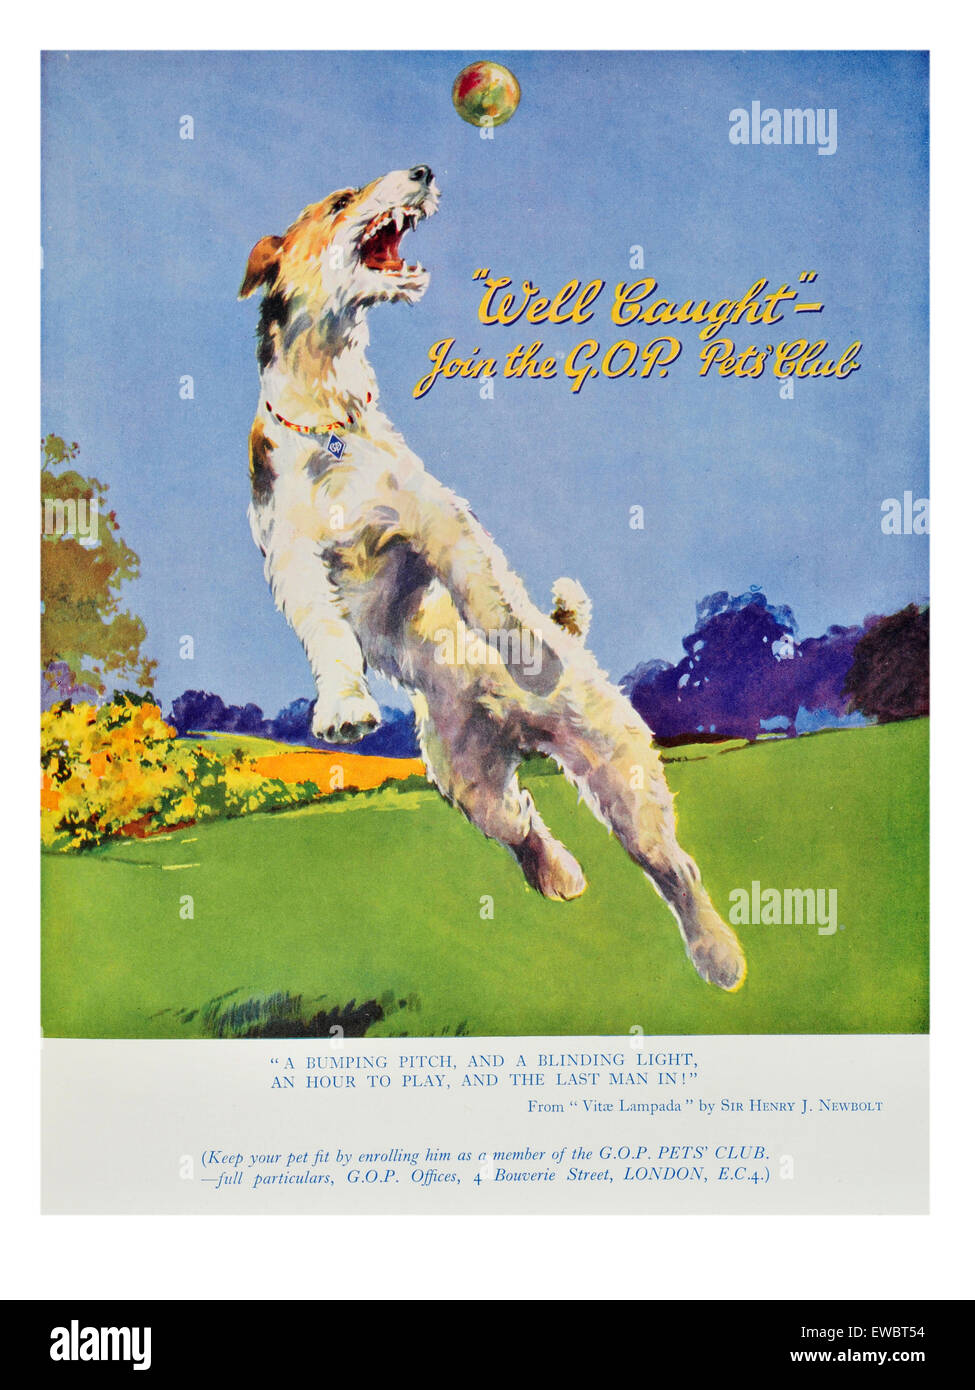 Advertisement for a pet club with a dog leaping im the air for a ball - Stock Image